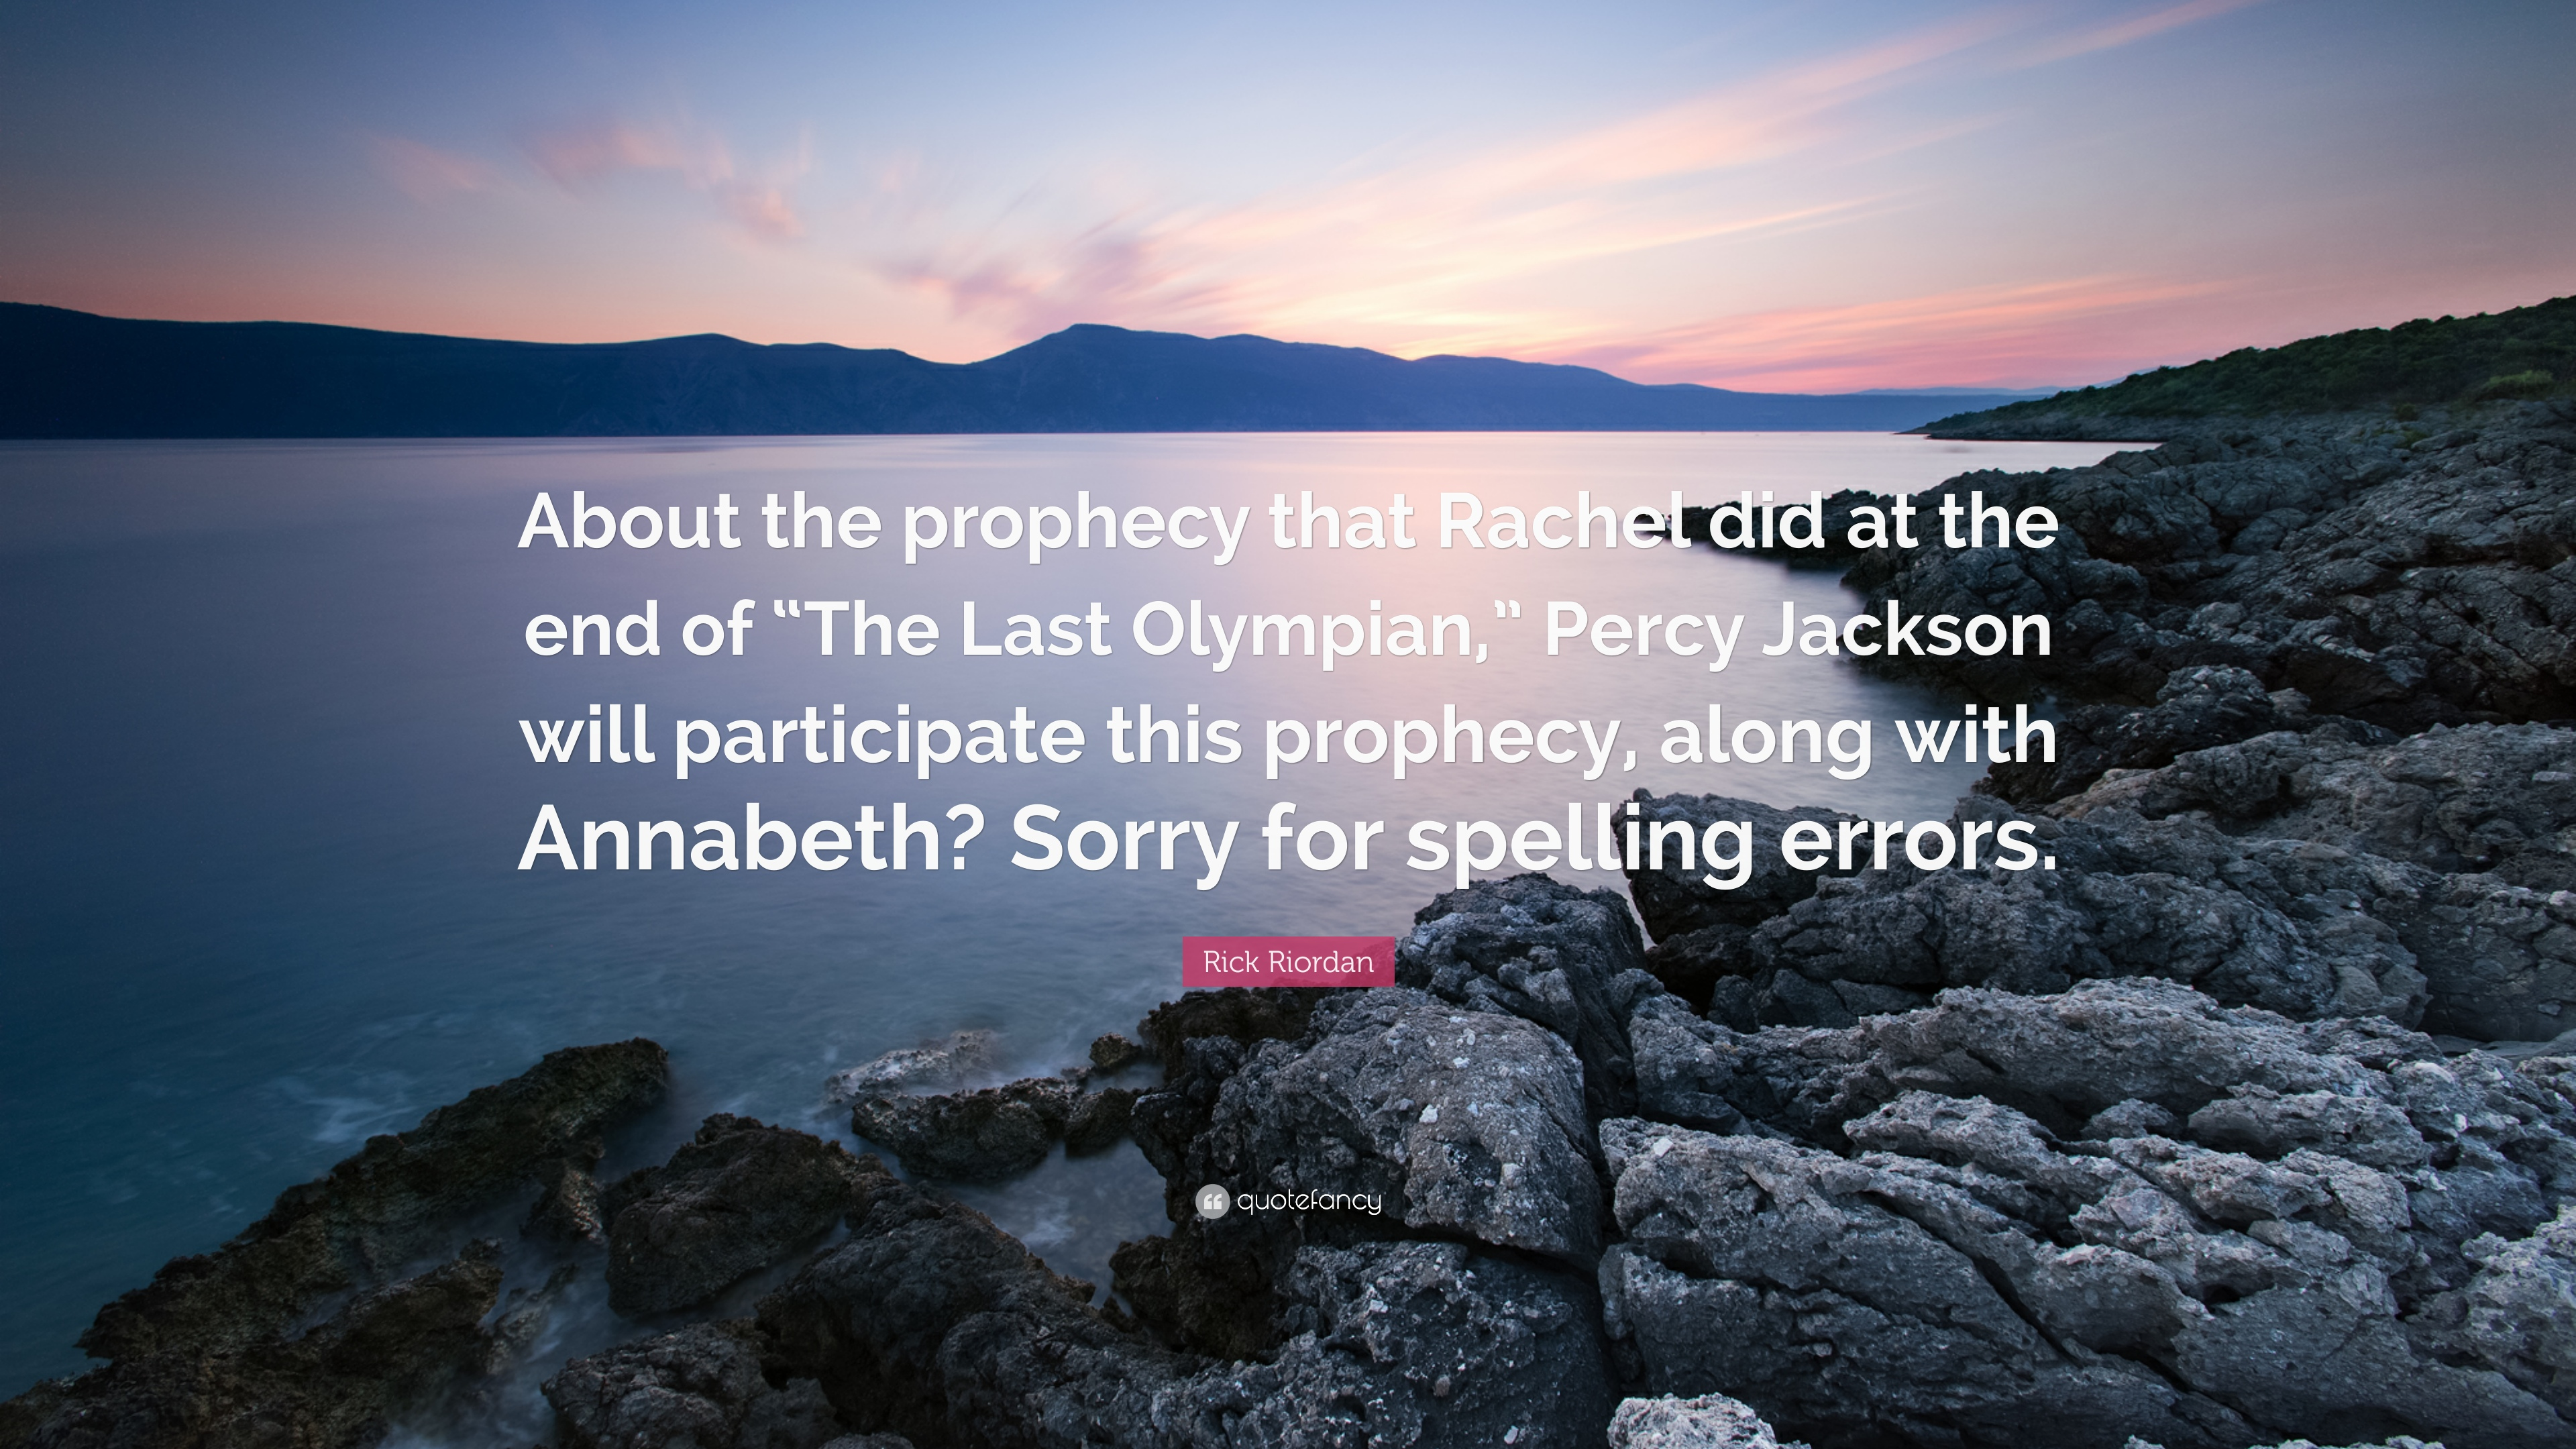 Rick riordan quote about the prophecy that rachel did at the end 6 wallpapers voltagebd Image collections